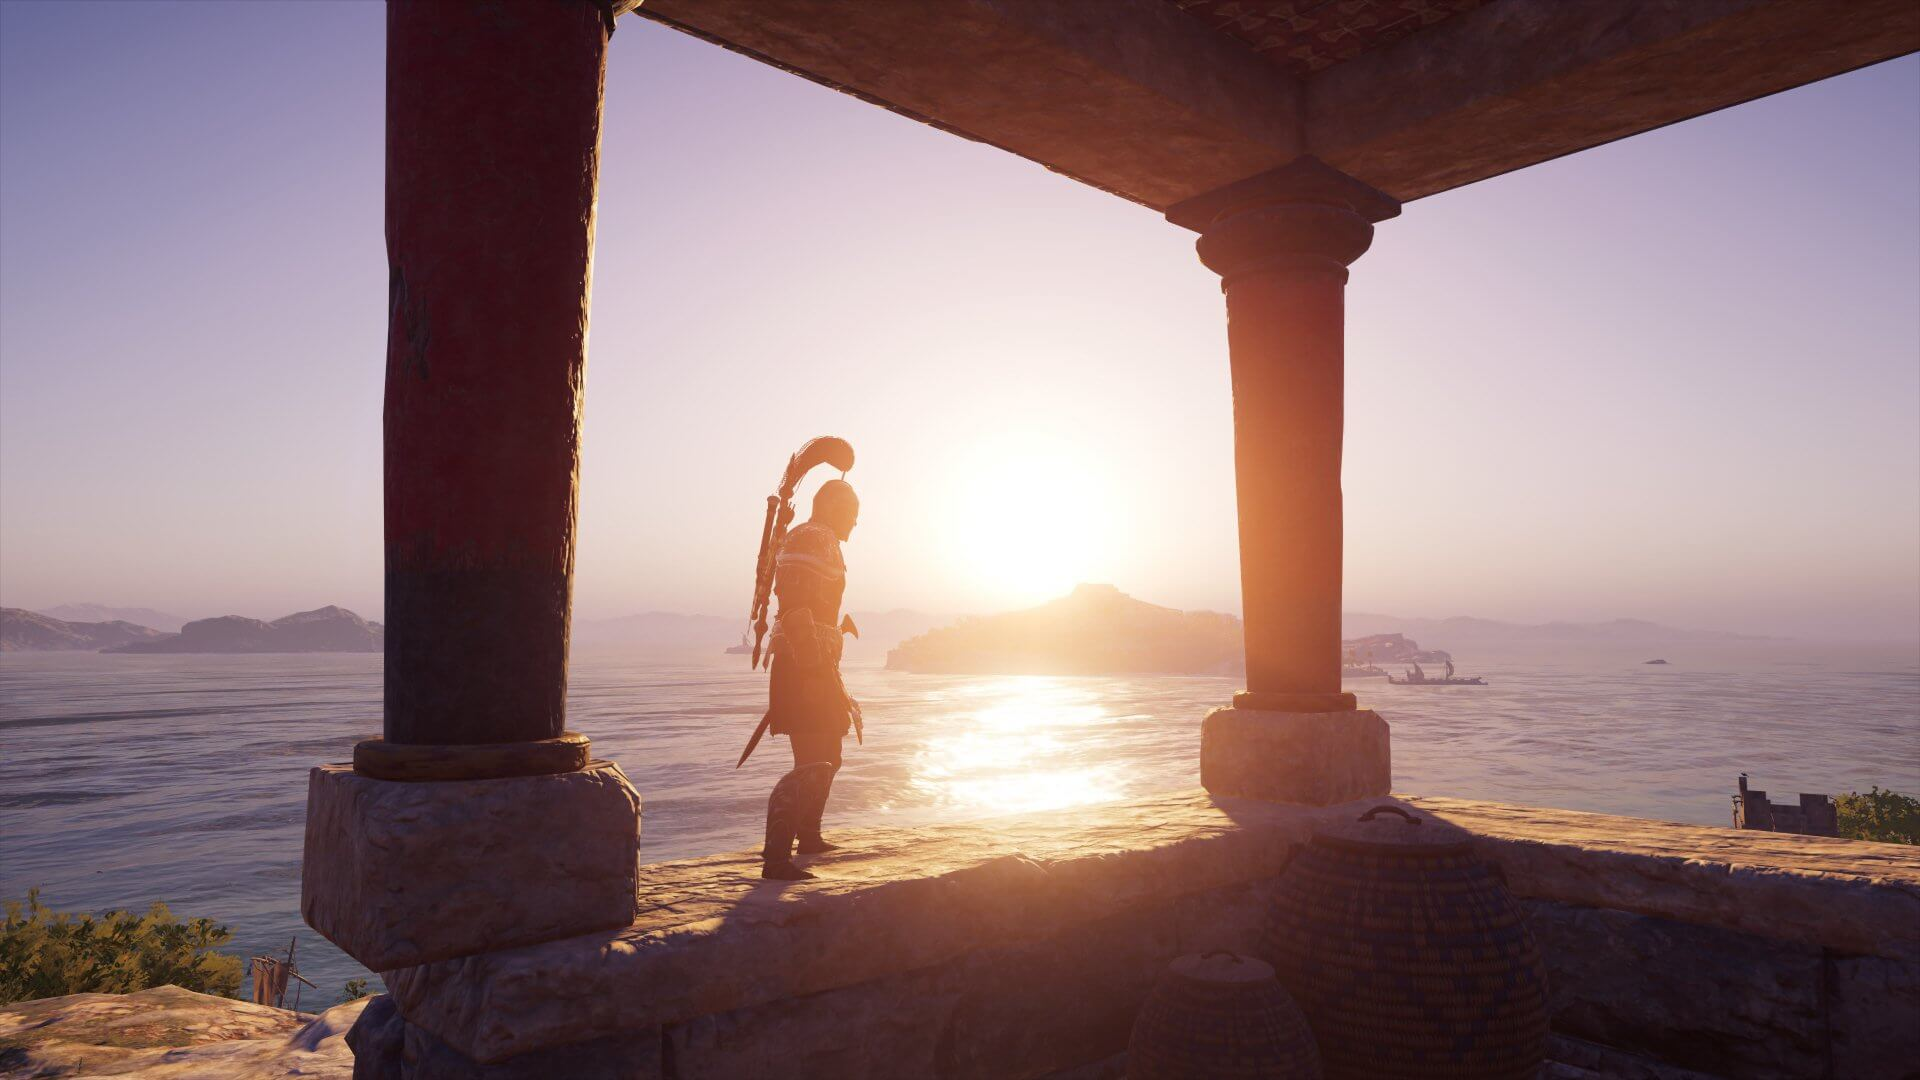 Assassins Creed® Odyssey  17 - Assassin's Creed Odyssey: confira o guia de dicas e truques do game